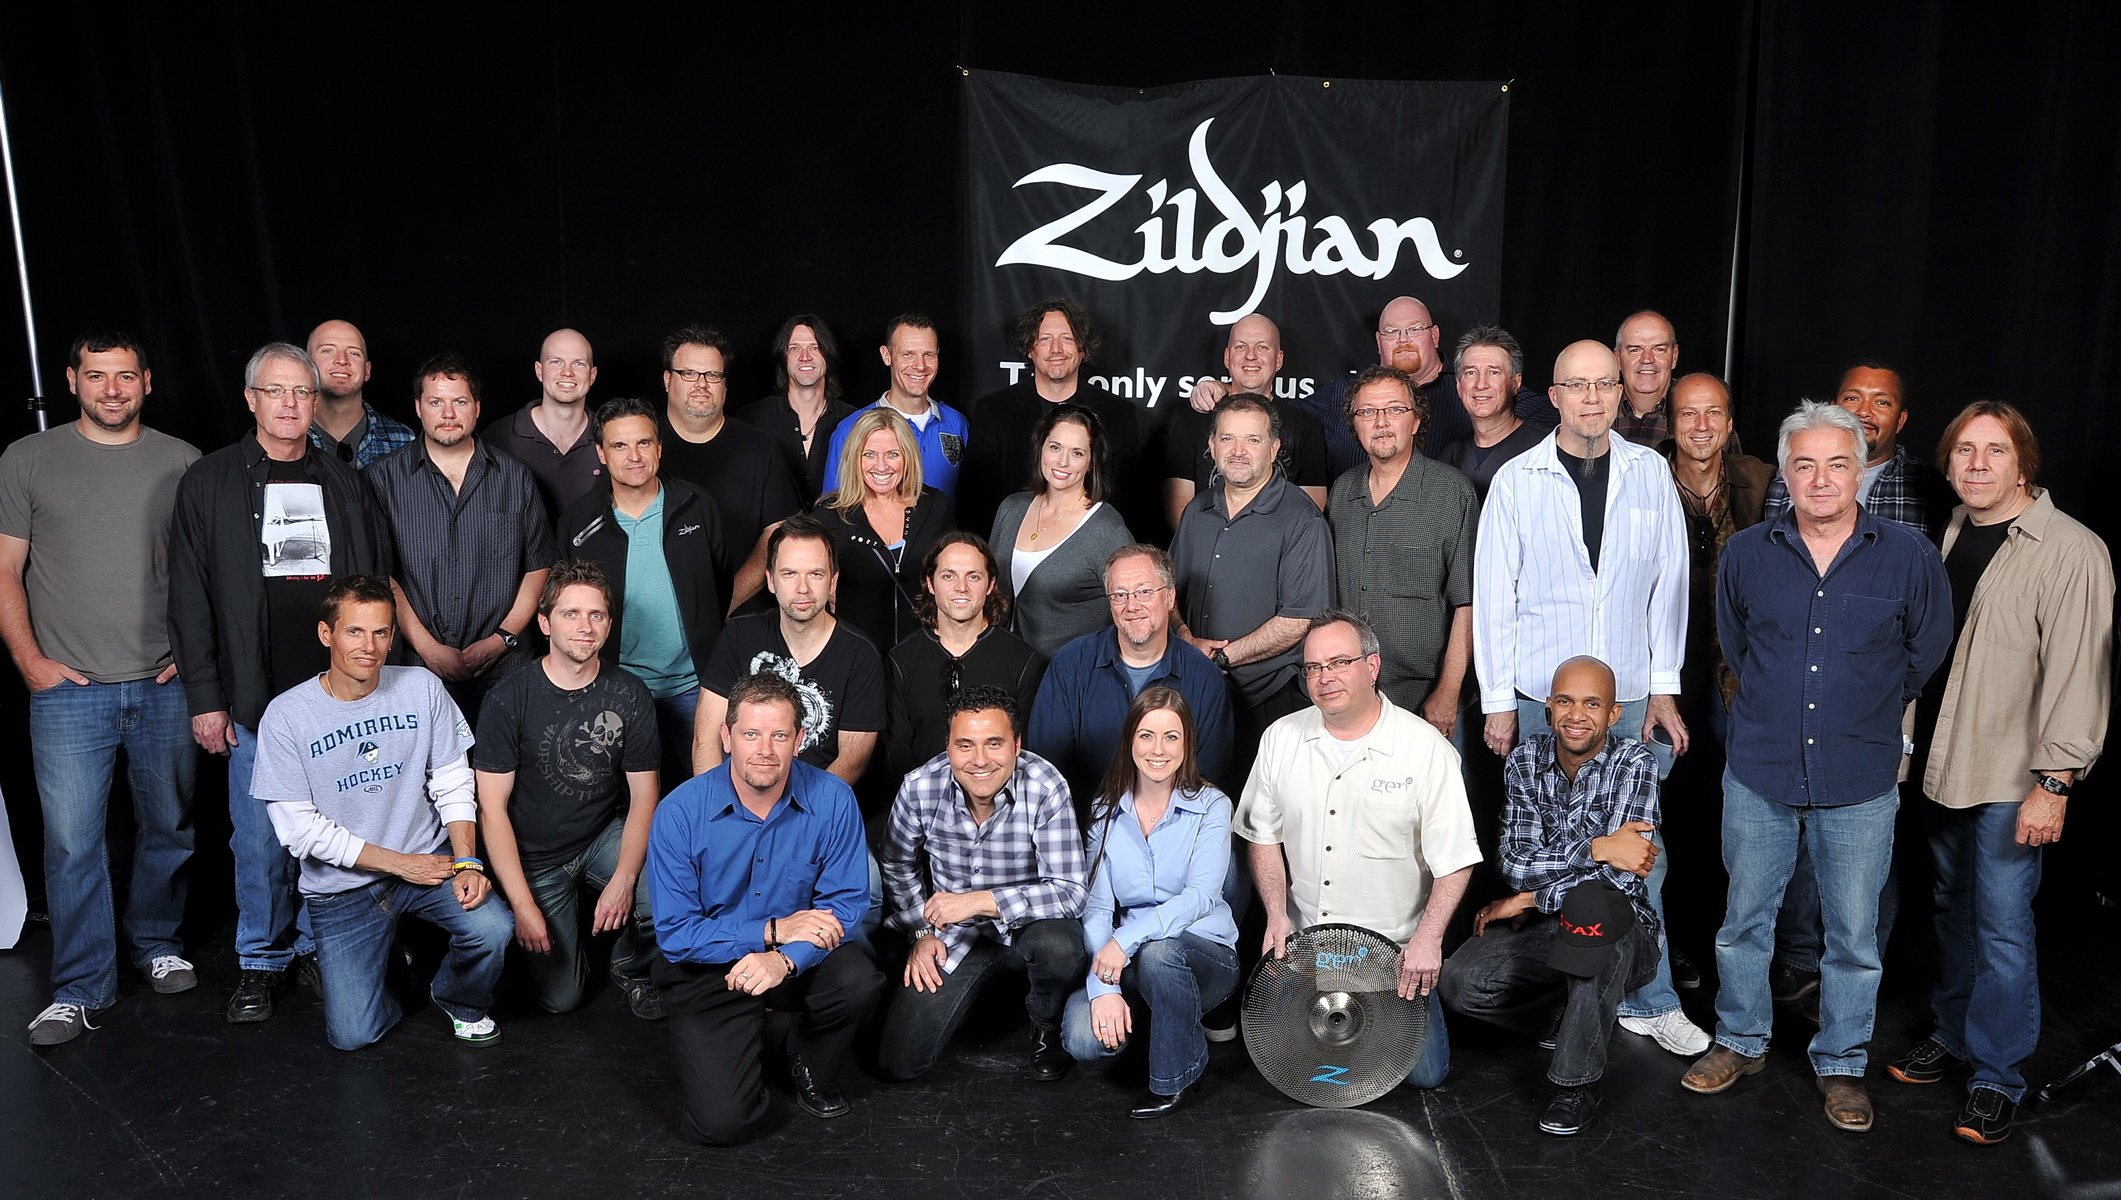 with the Zildjian Team, NAMM 2011